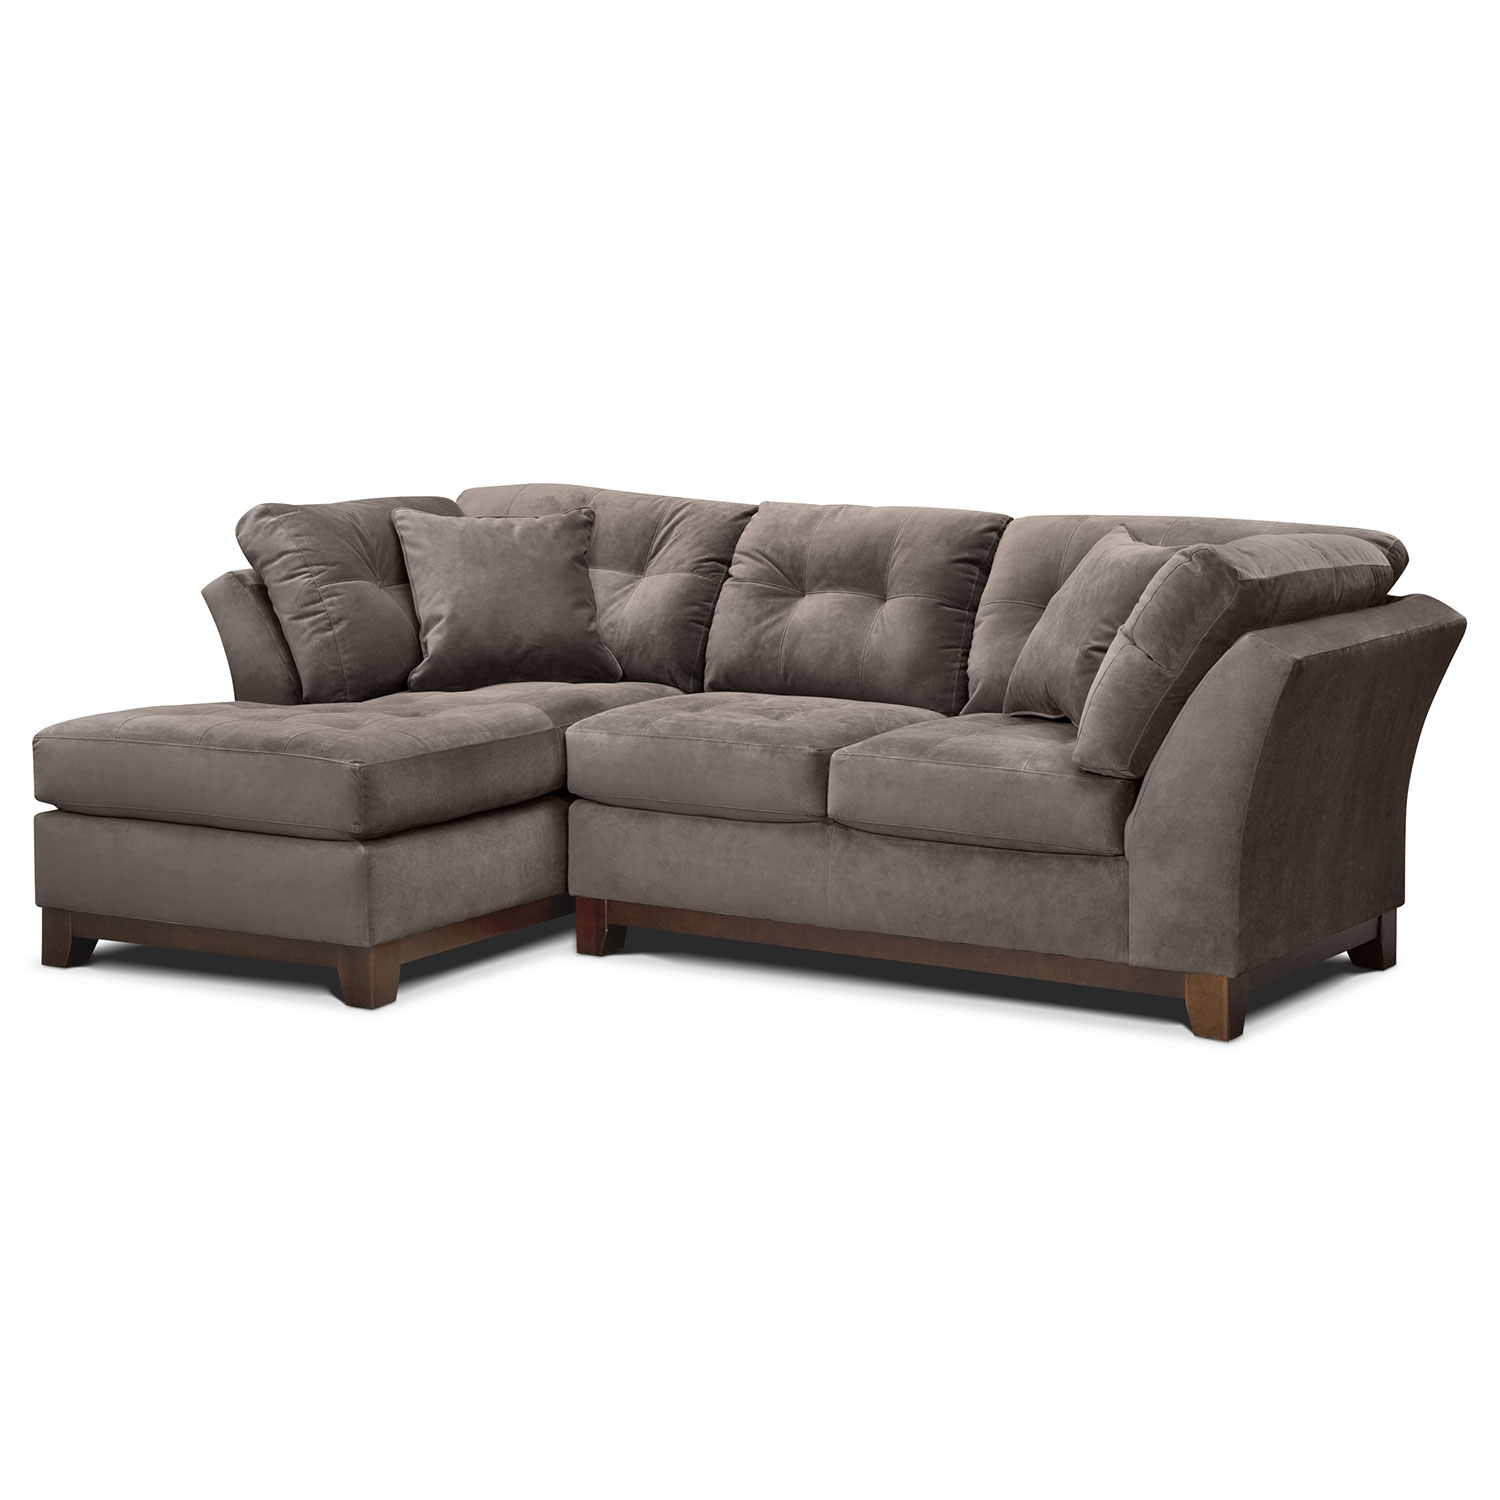 Inspiring sectional couches for sale with cushions and wooden legs for home furniture ideas with cheap sectional couches for sale